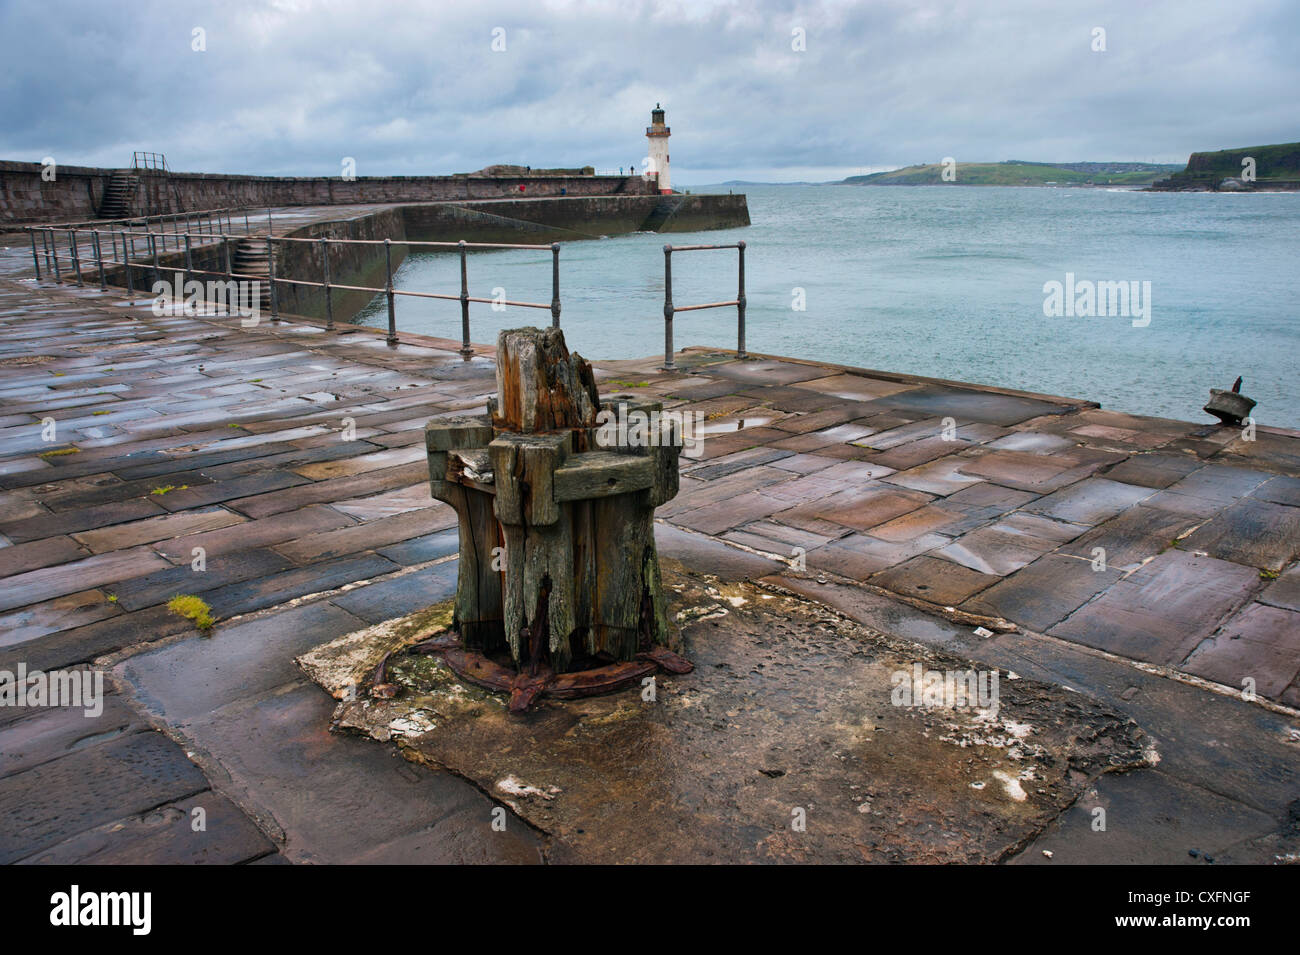 Whitehaven harbour and lighthouse, Cumbria - Stock Image